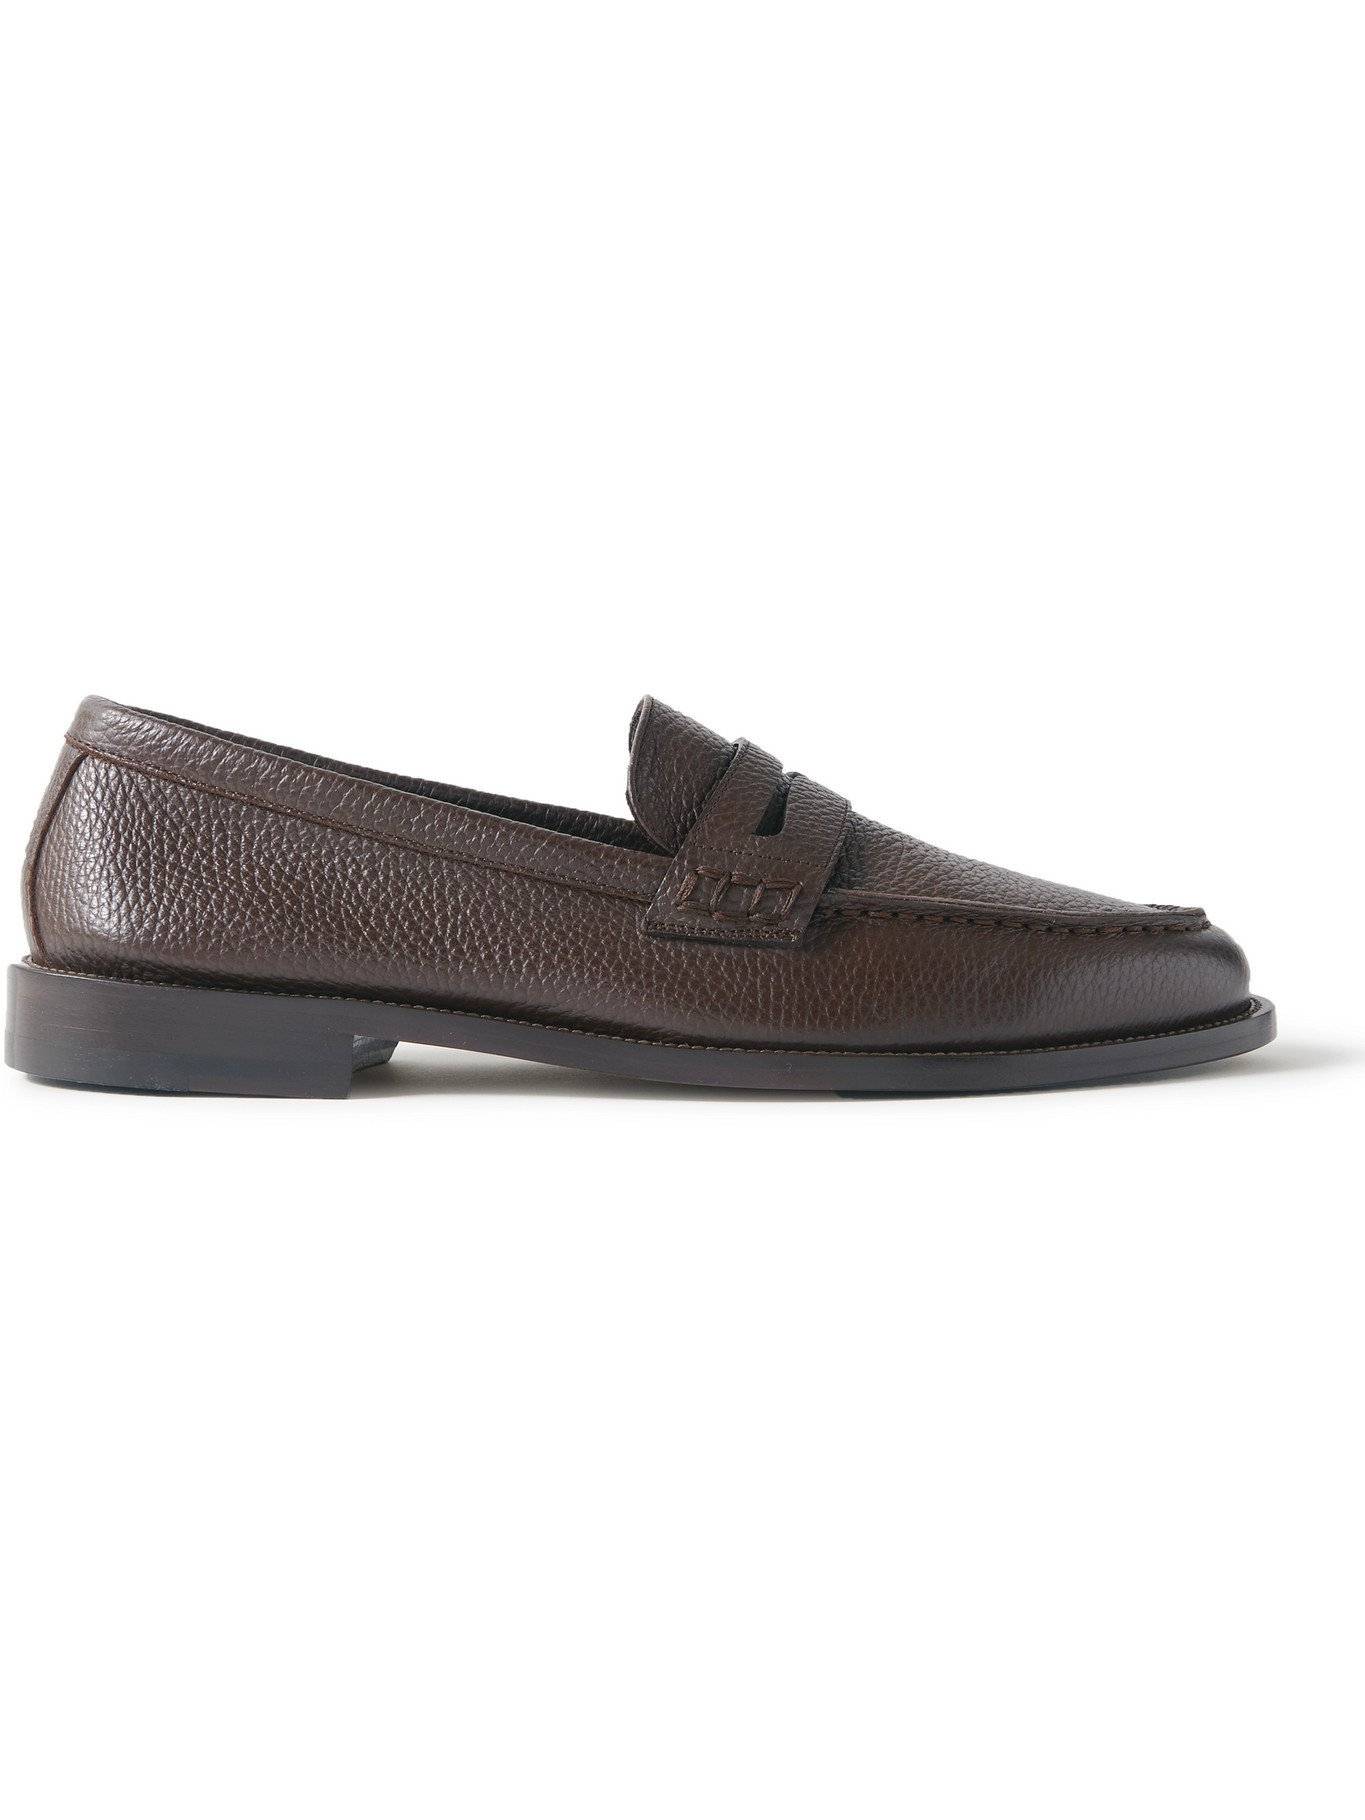 Photo: MANOLO BLAHNIK - Perry Full-Grain Leather Penny Loafers - Brown - UK 7